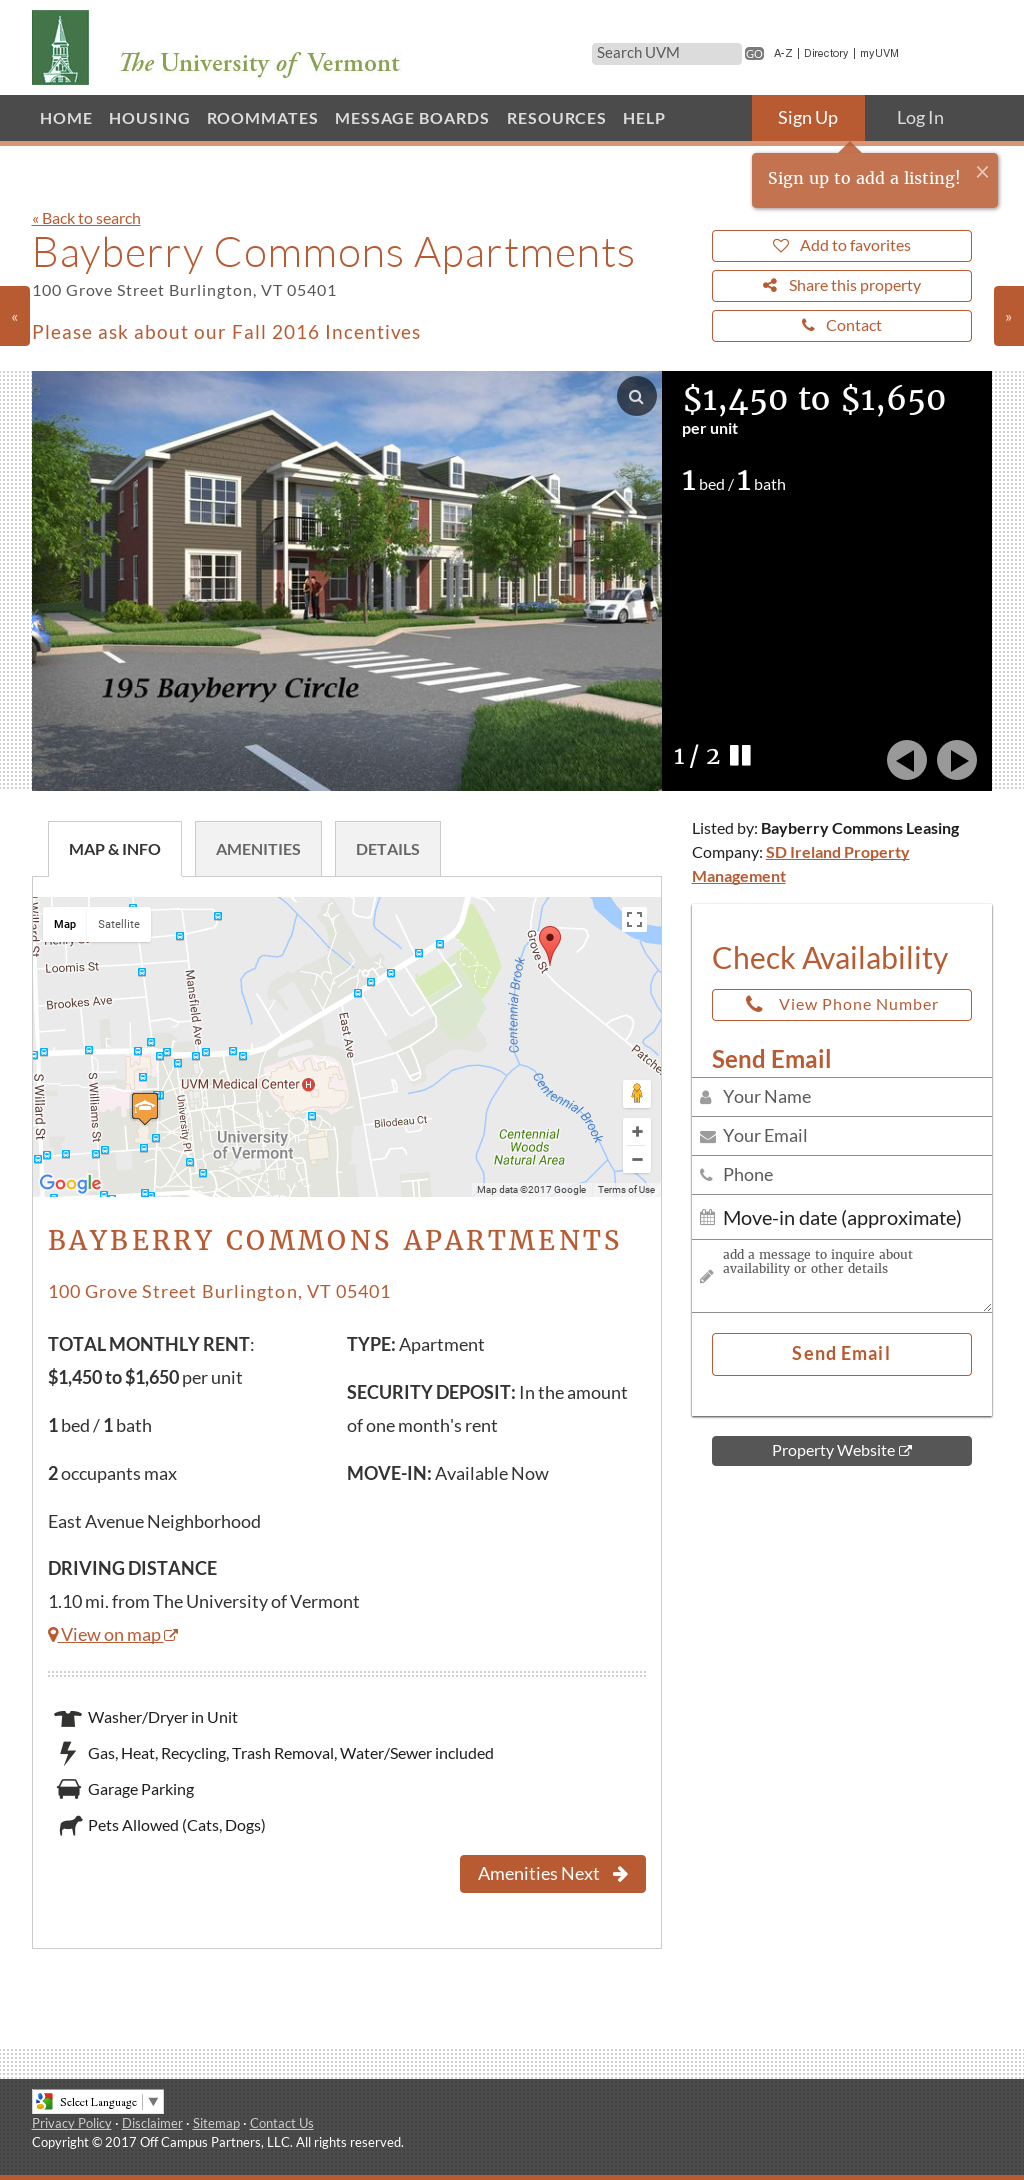 The University of Vermont | Off Campus Housing Search